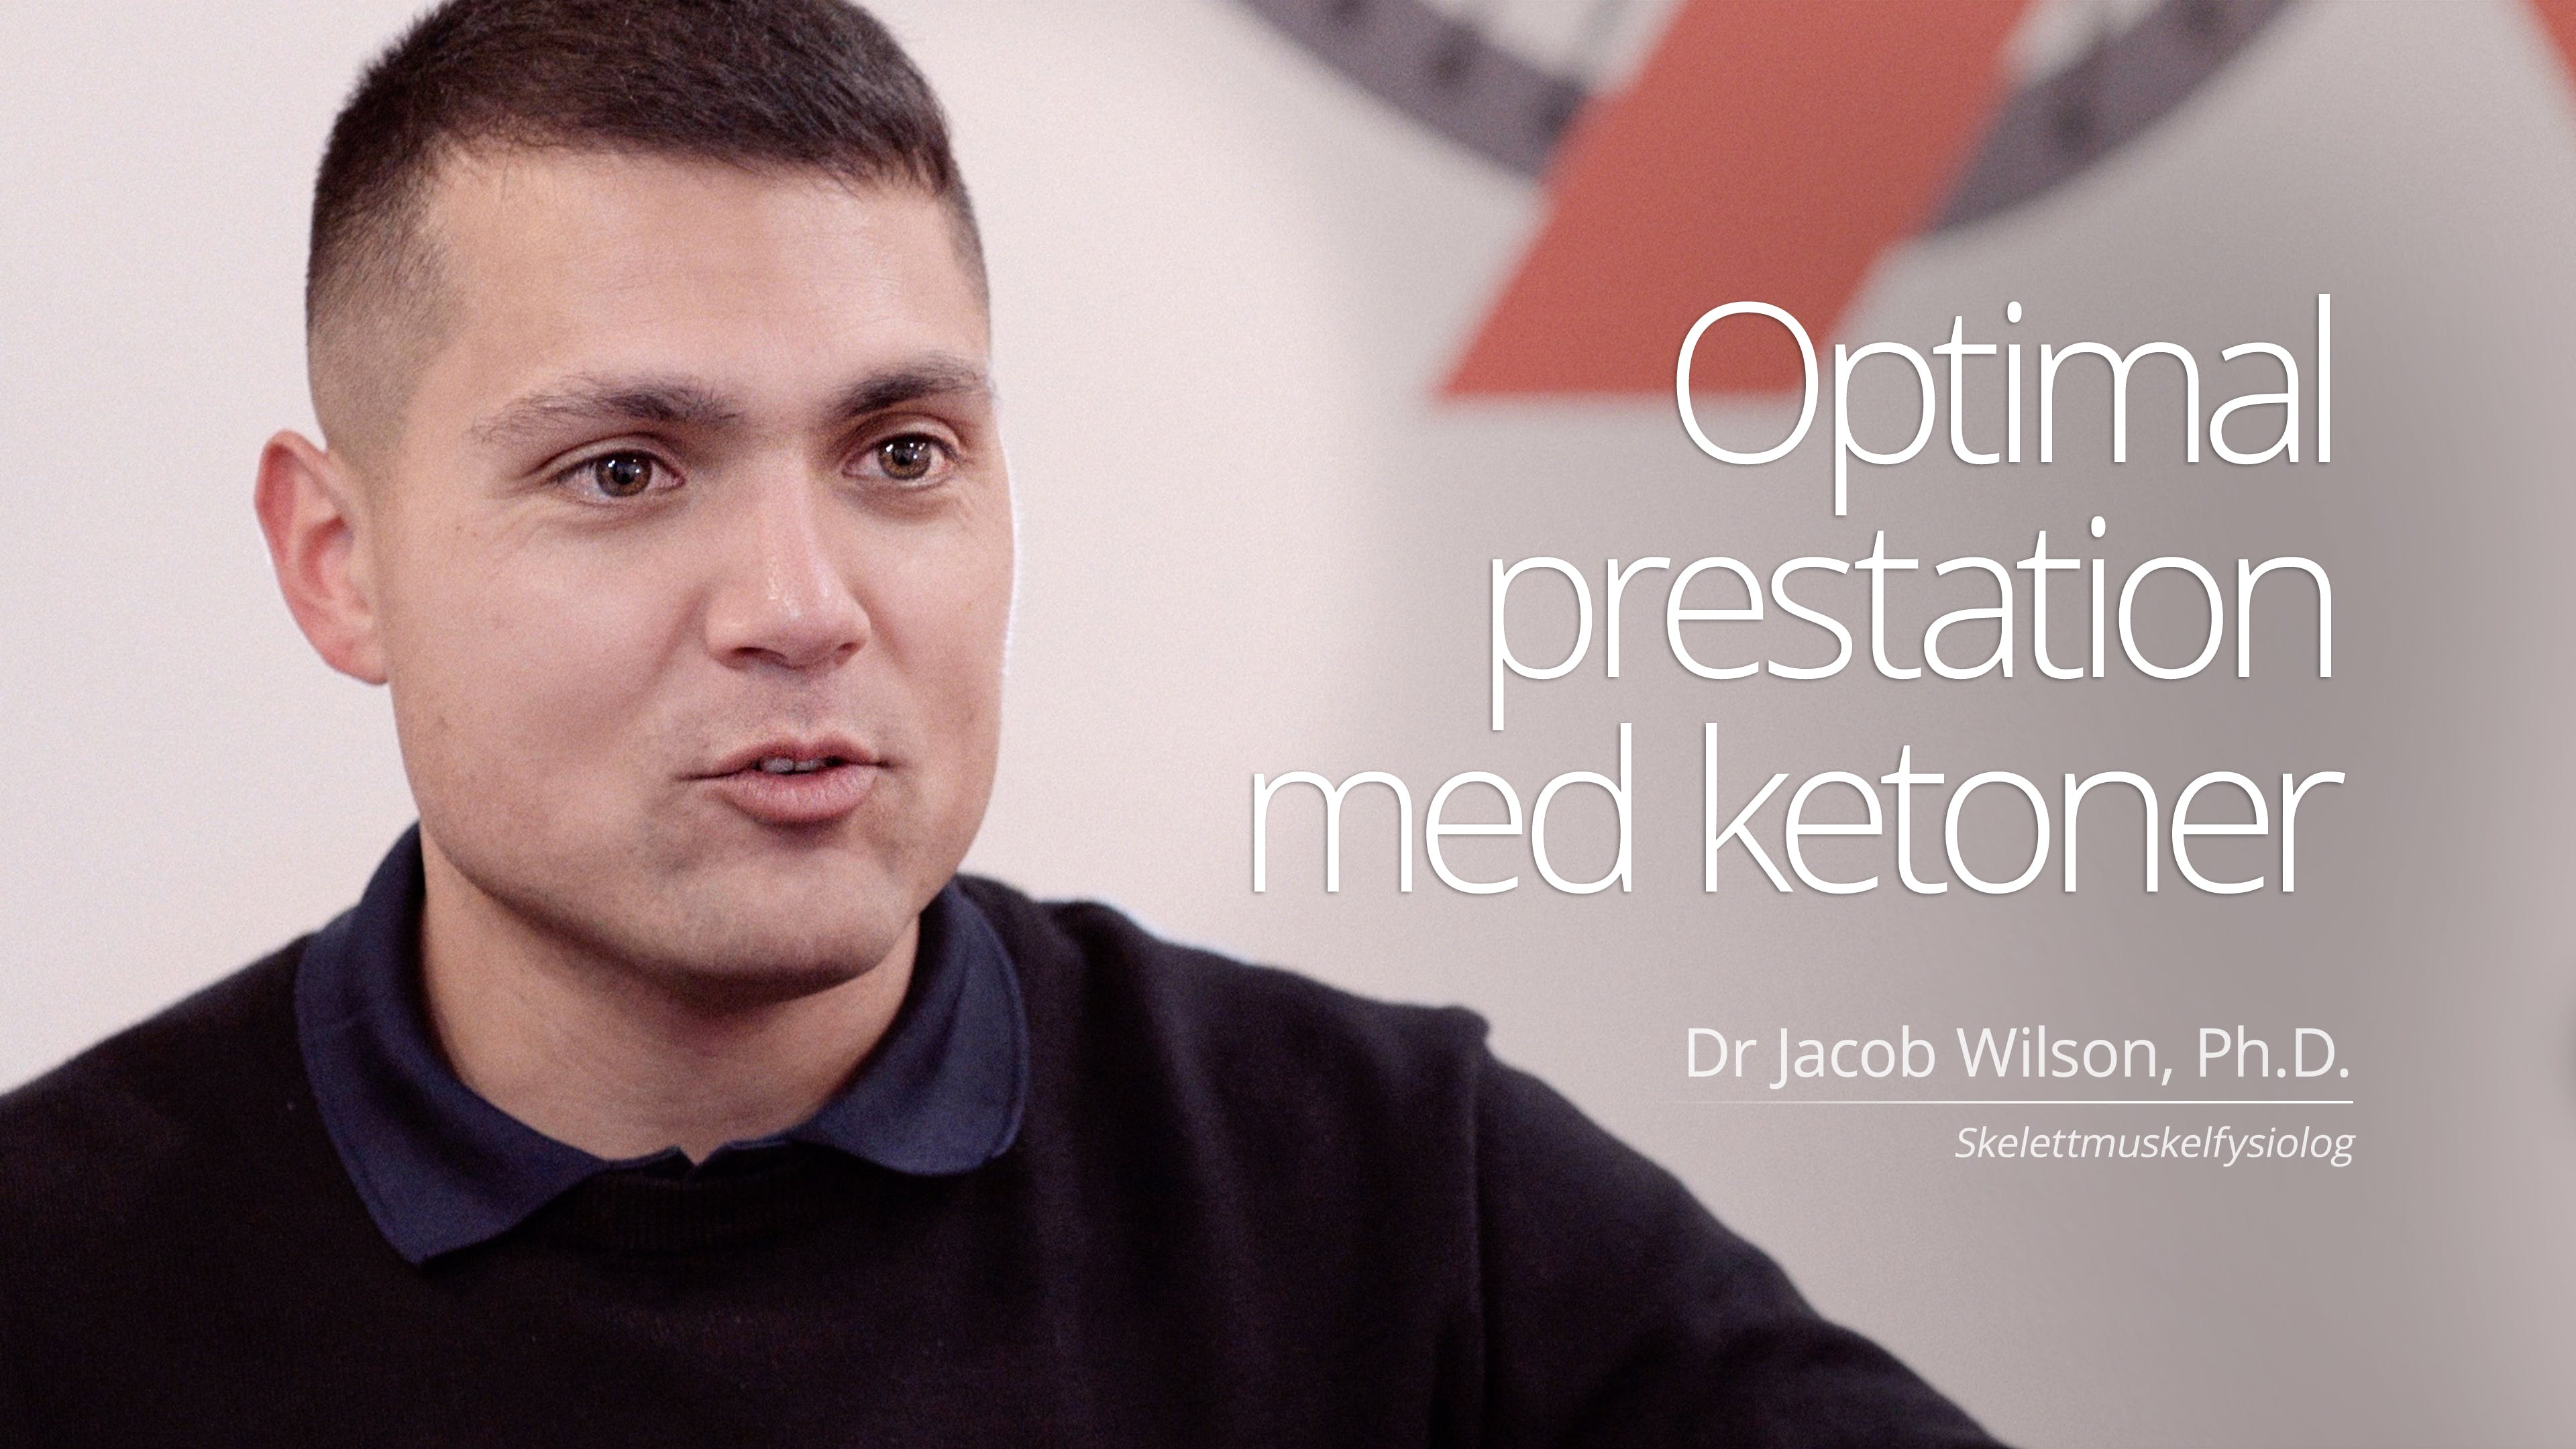 Optimal prestation med ketoner